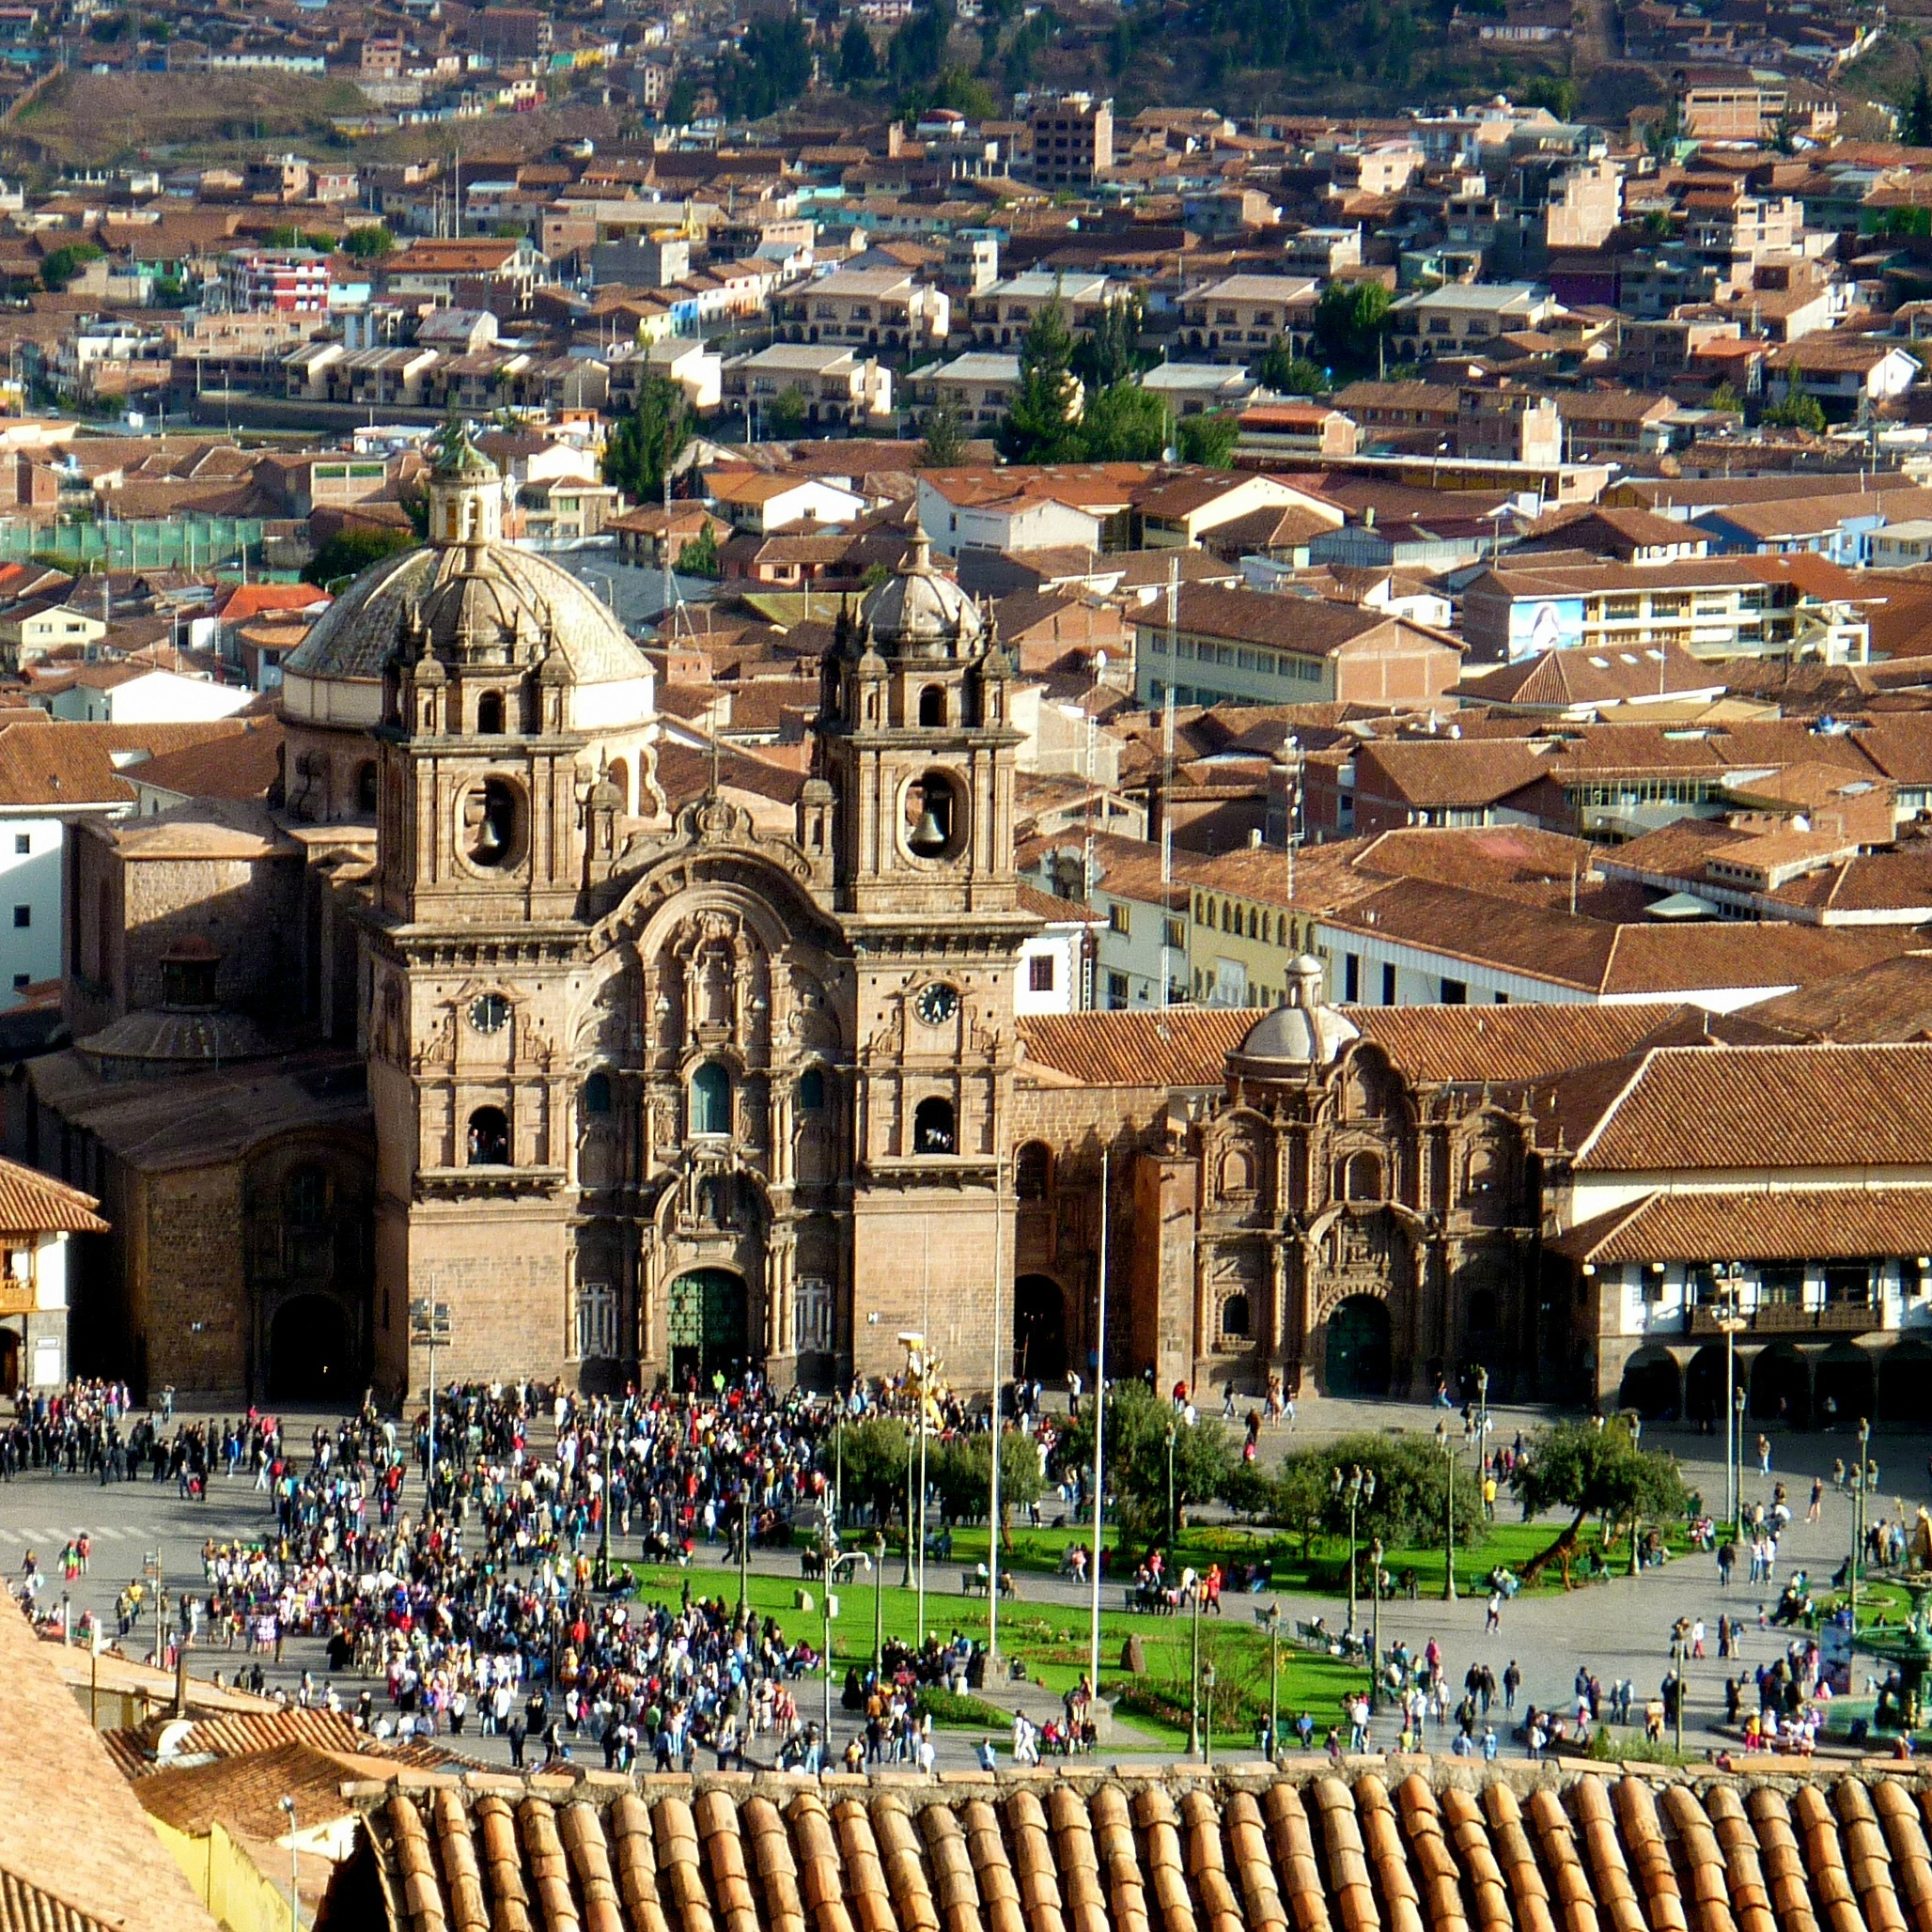 Plaza with lots of people in Cusco